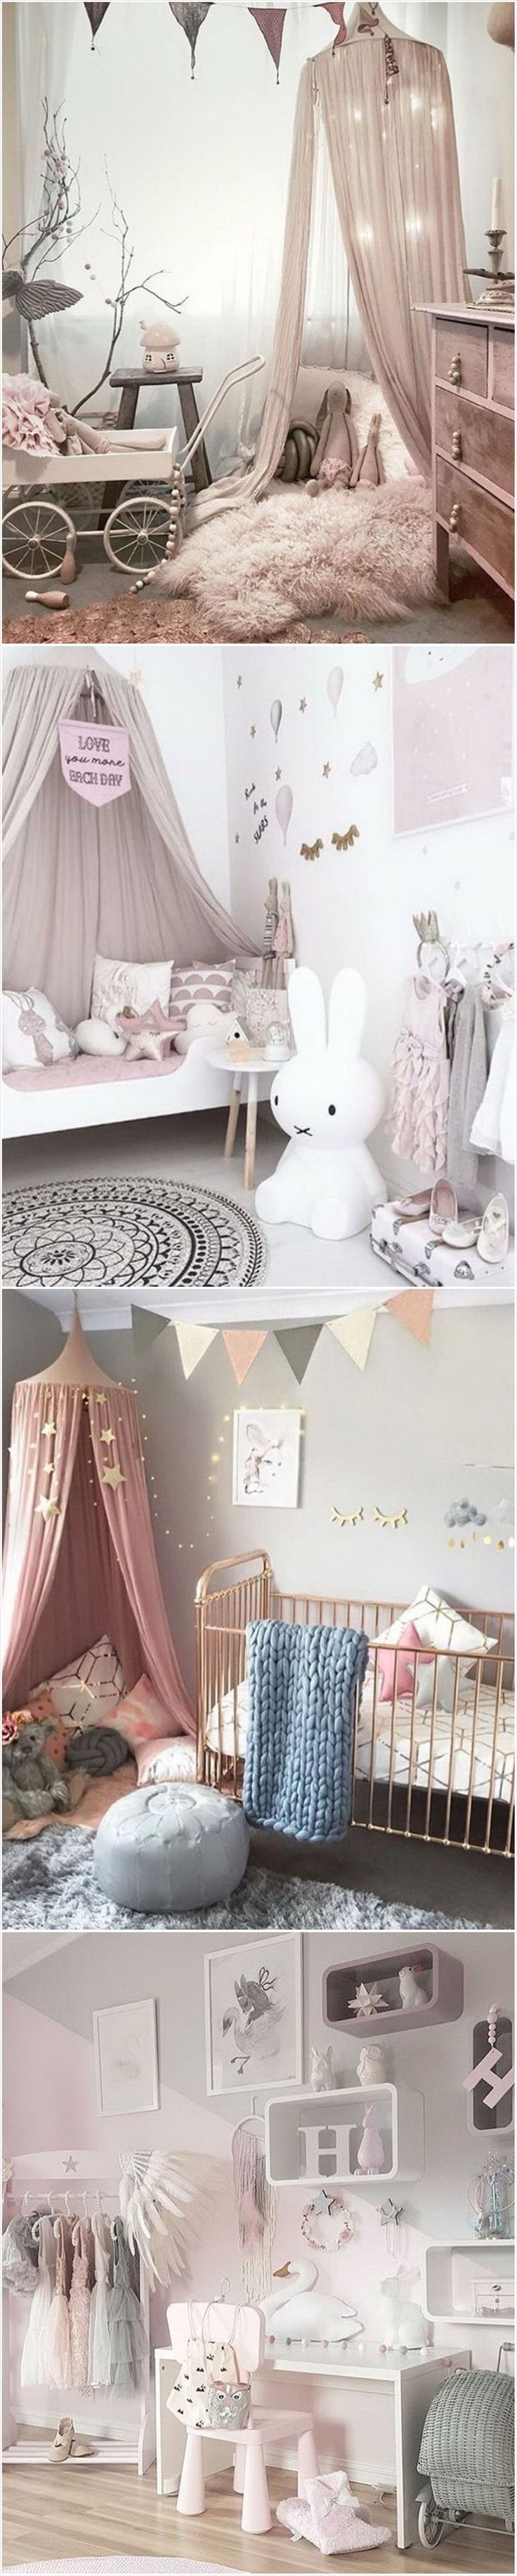 Children's and kids' room design ideas, whatever the room size, budget and fuss levels you're dealing with!